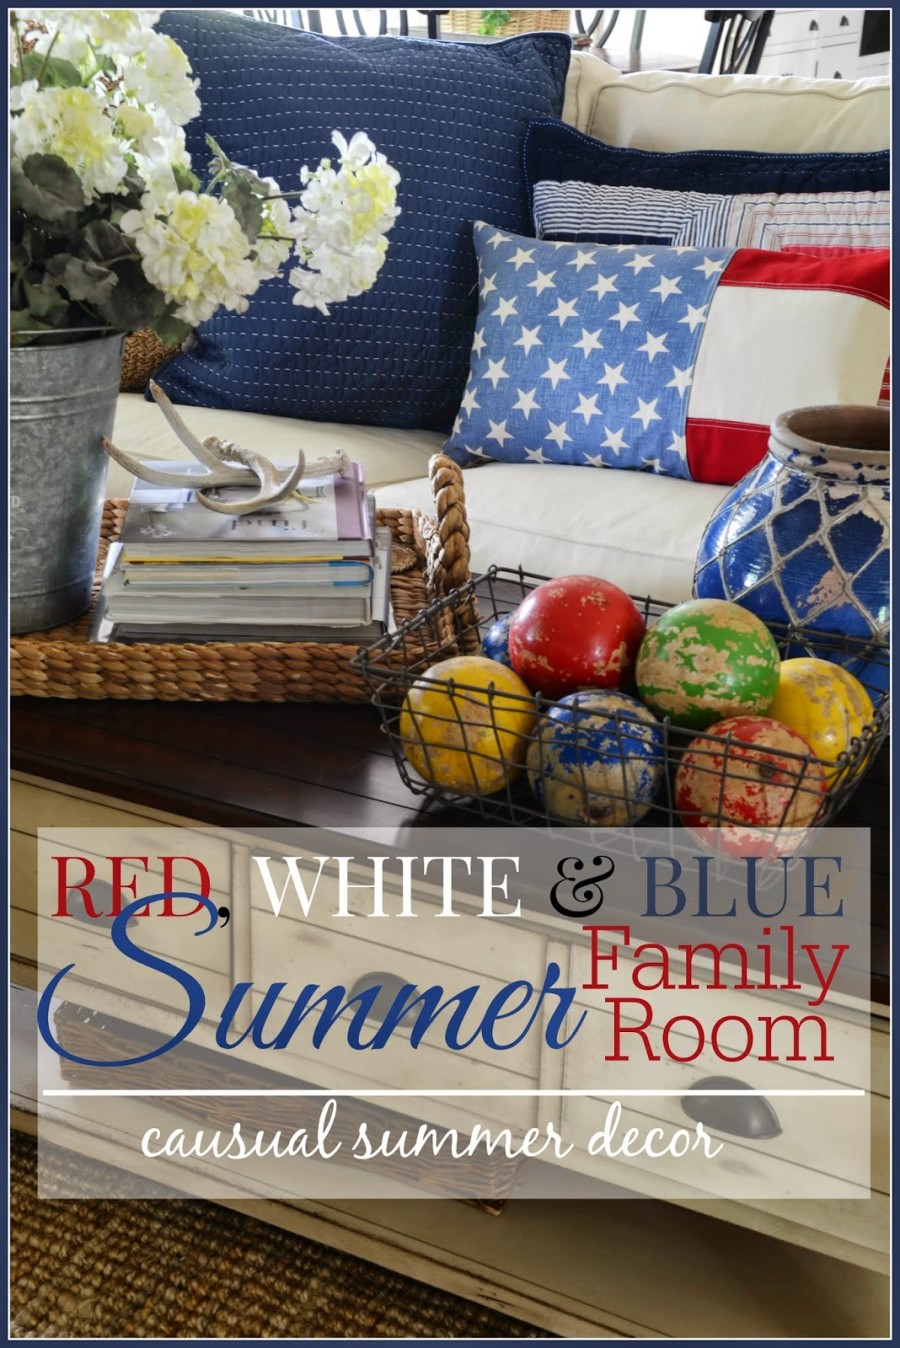 RED, WHITE AND BLUE SUMMER FAMILY ROOM